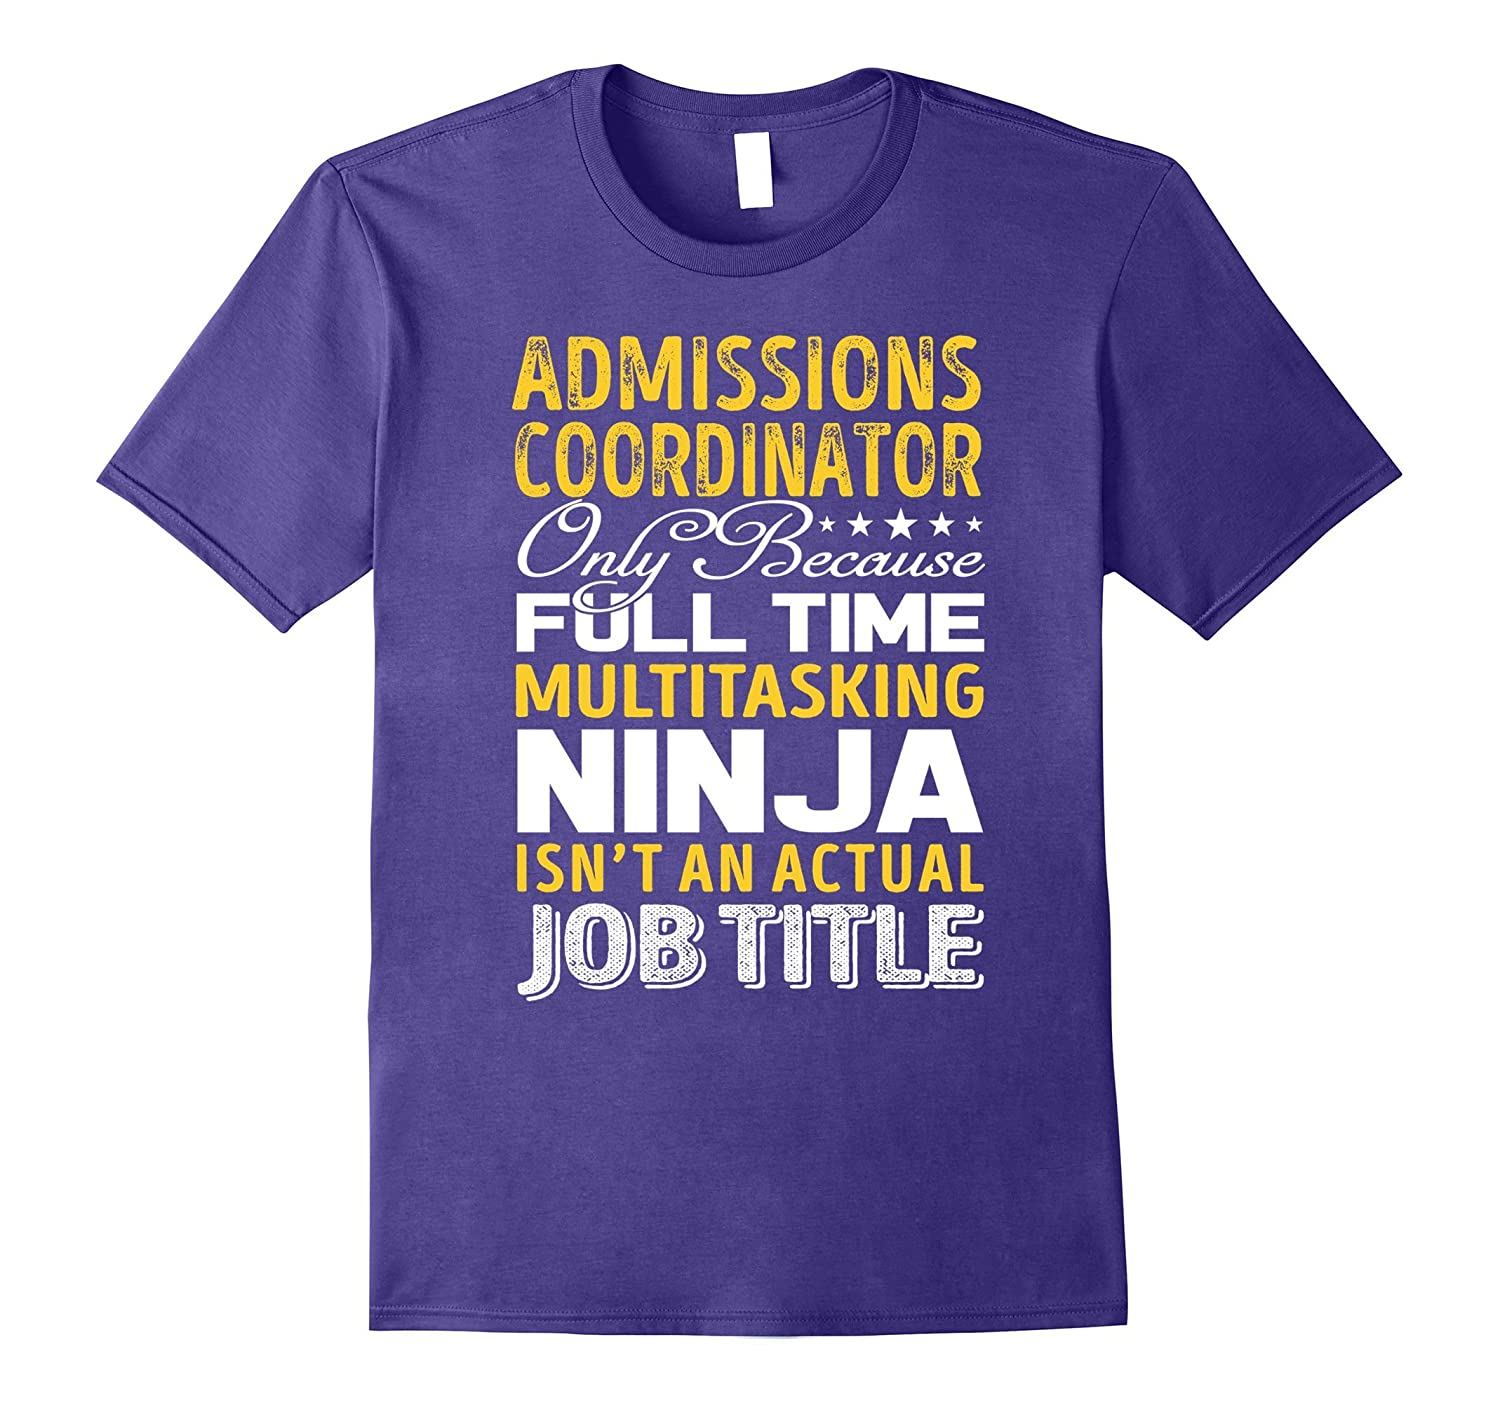 Admissions Coordinator Is Not An Actual Job Title TShirt-BN